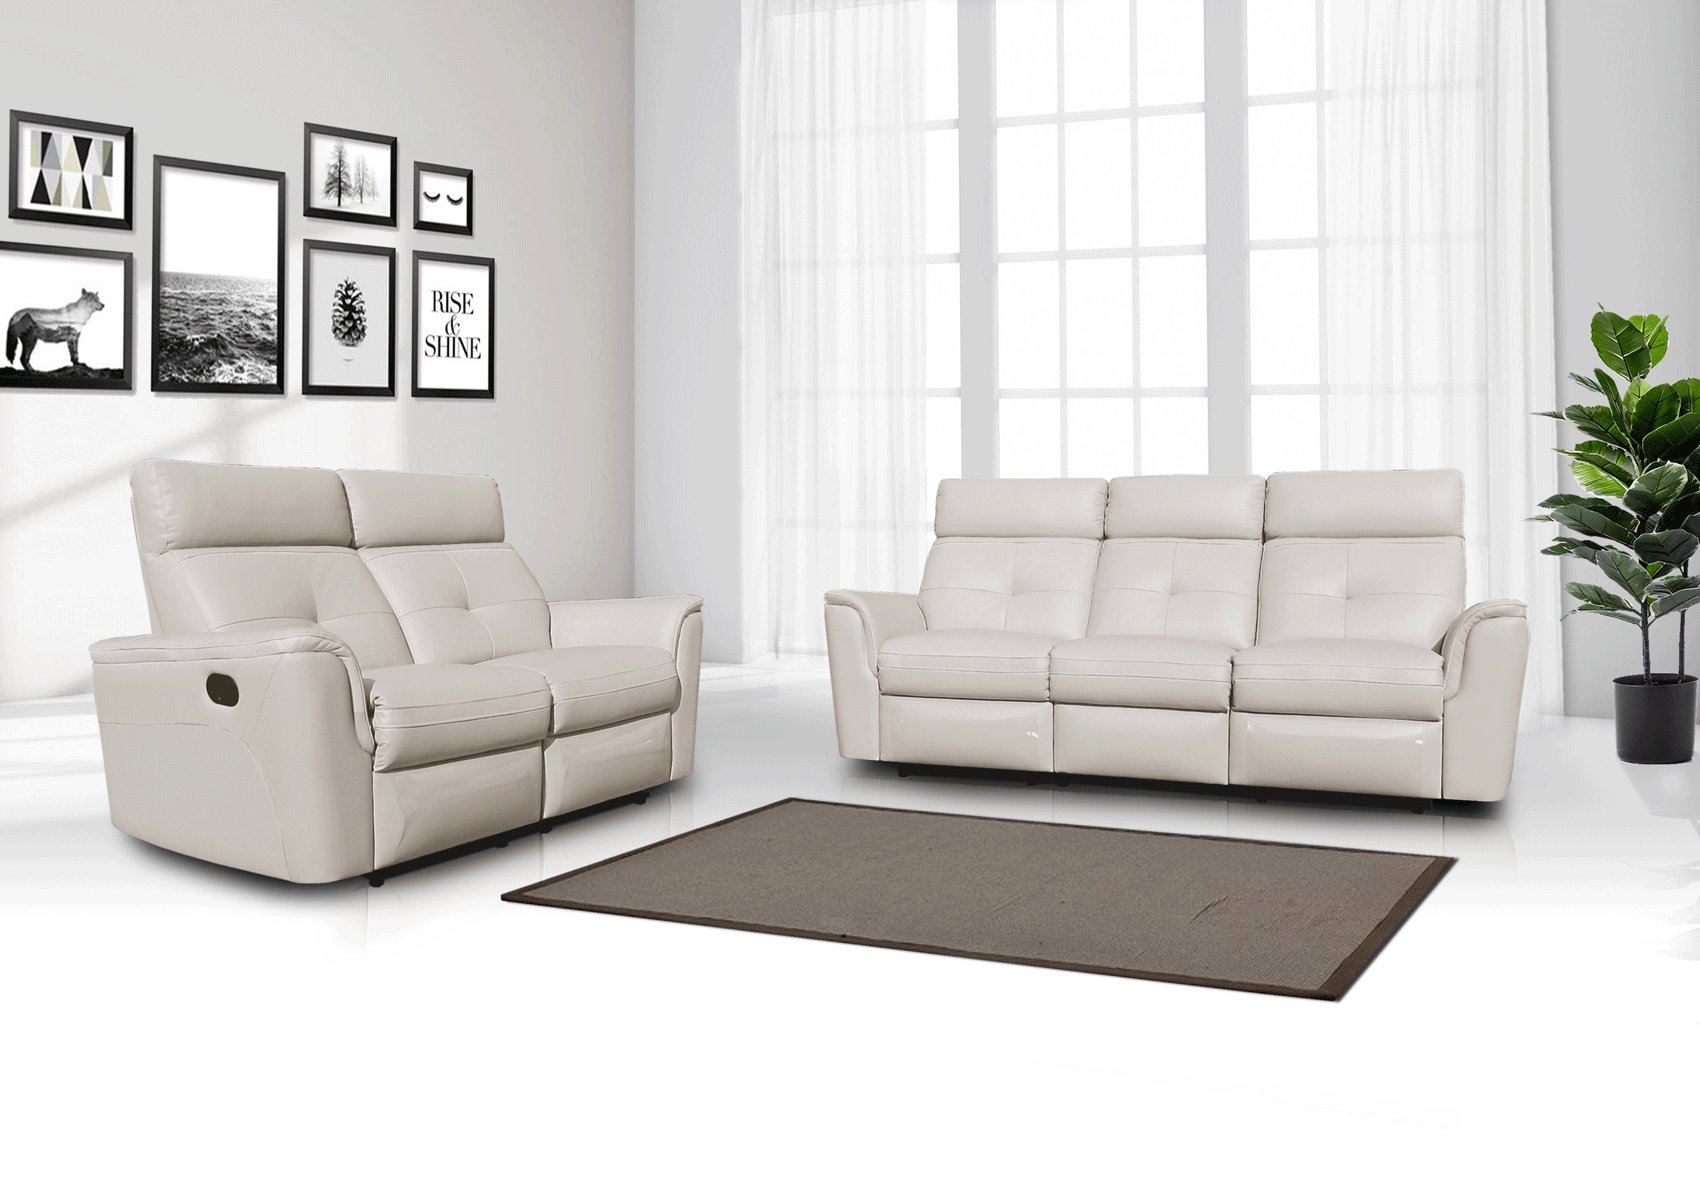 Contemporary Arizona Leather Living Room Set